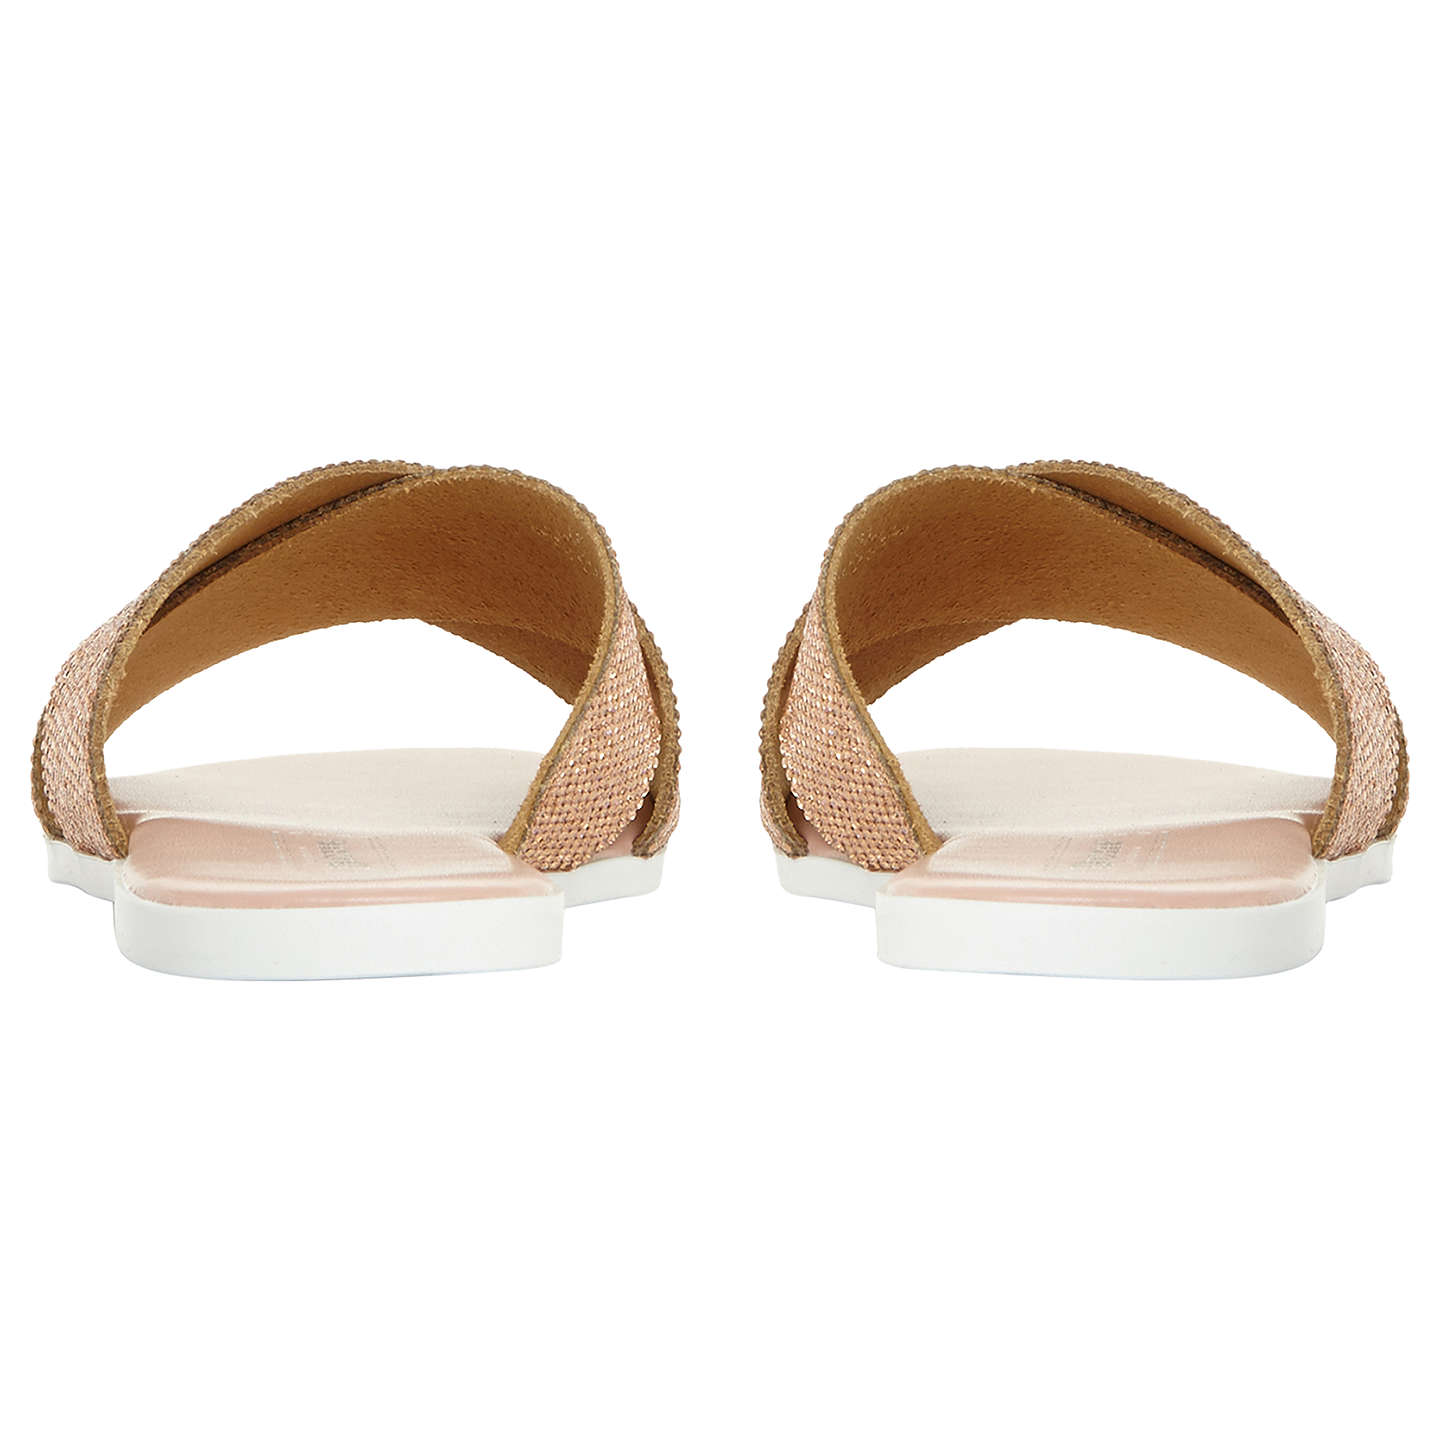 BuyDune Nevadaa Embellished Sandals, Blush, 3 Online at johnlewis.com